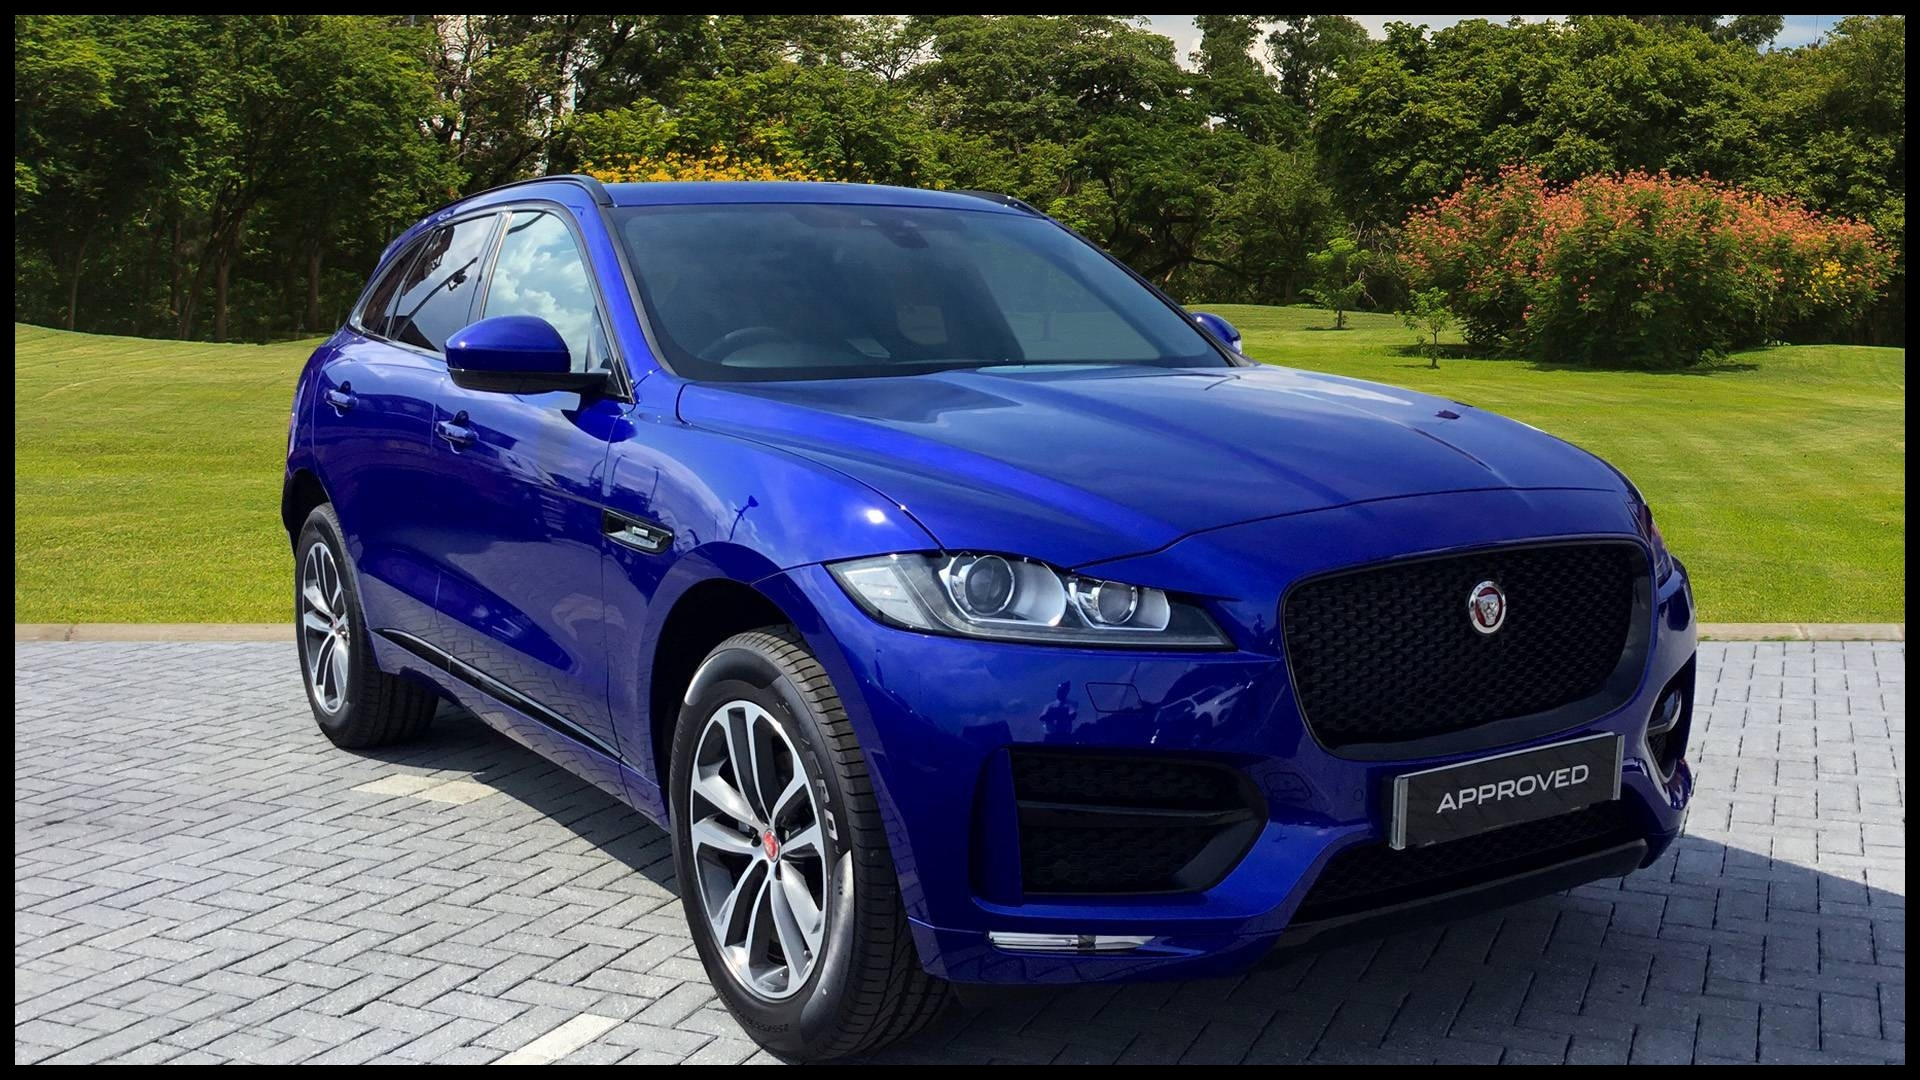 Used Cars Seattle Awesome Beautiful Used Car Warranty Template Elegant Used Jaguar F Pace 2 0d